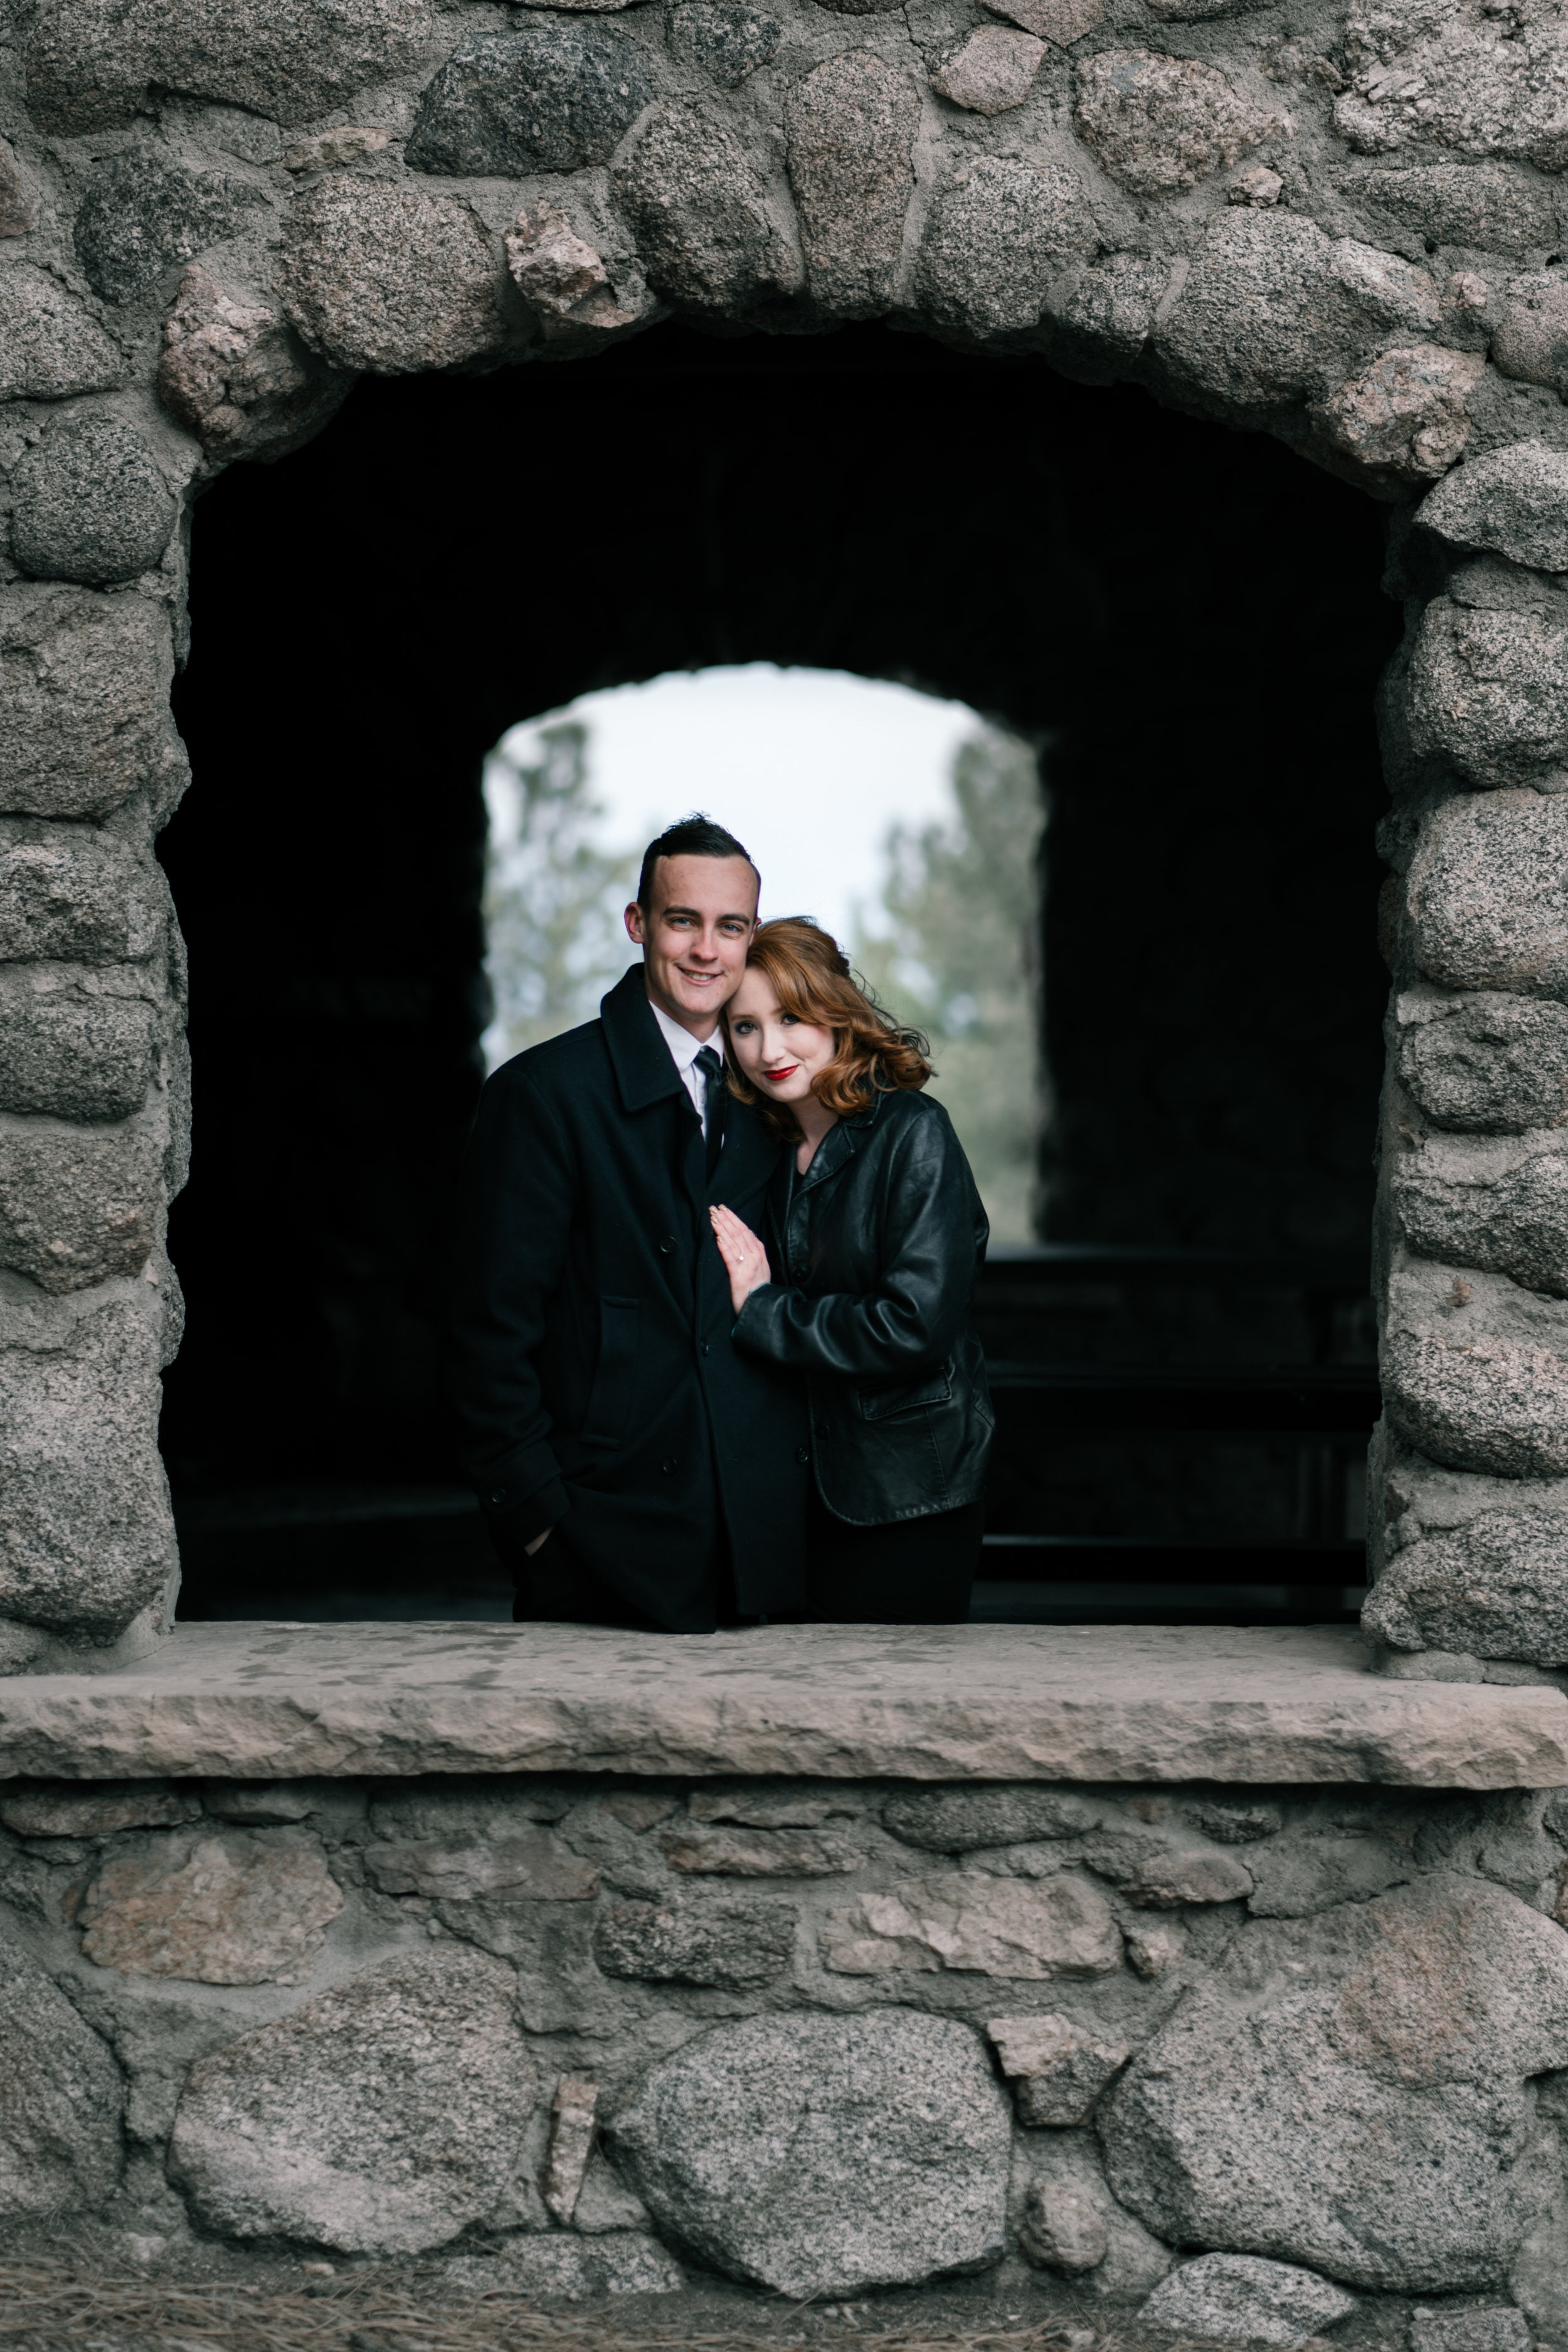 betsy-and-tim-proposal-19.jpg